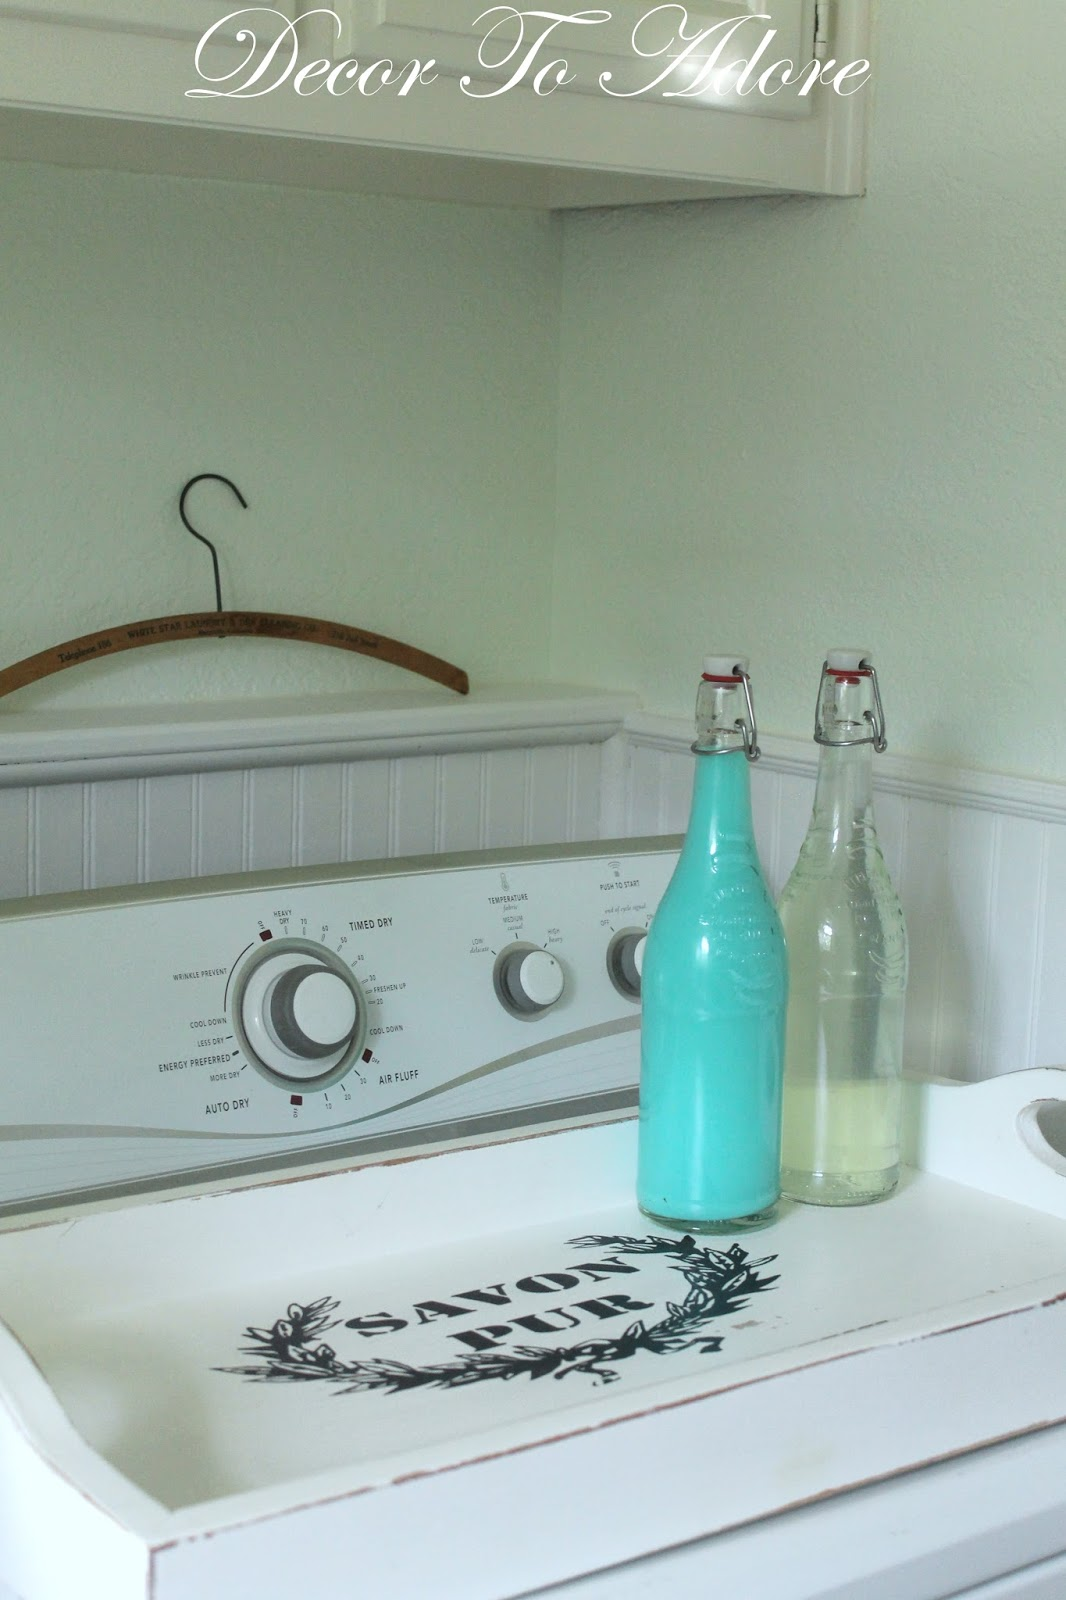 Decorative Laundry Items Decor To Adore A Pretty Storage Solution For Laundry Supplies